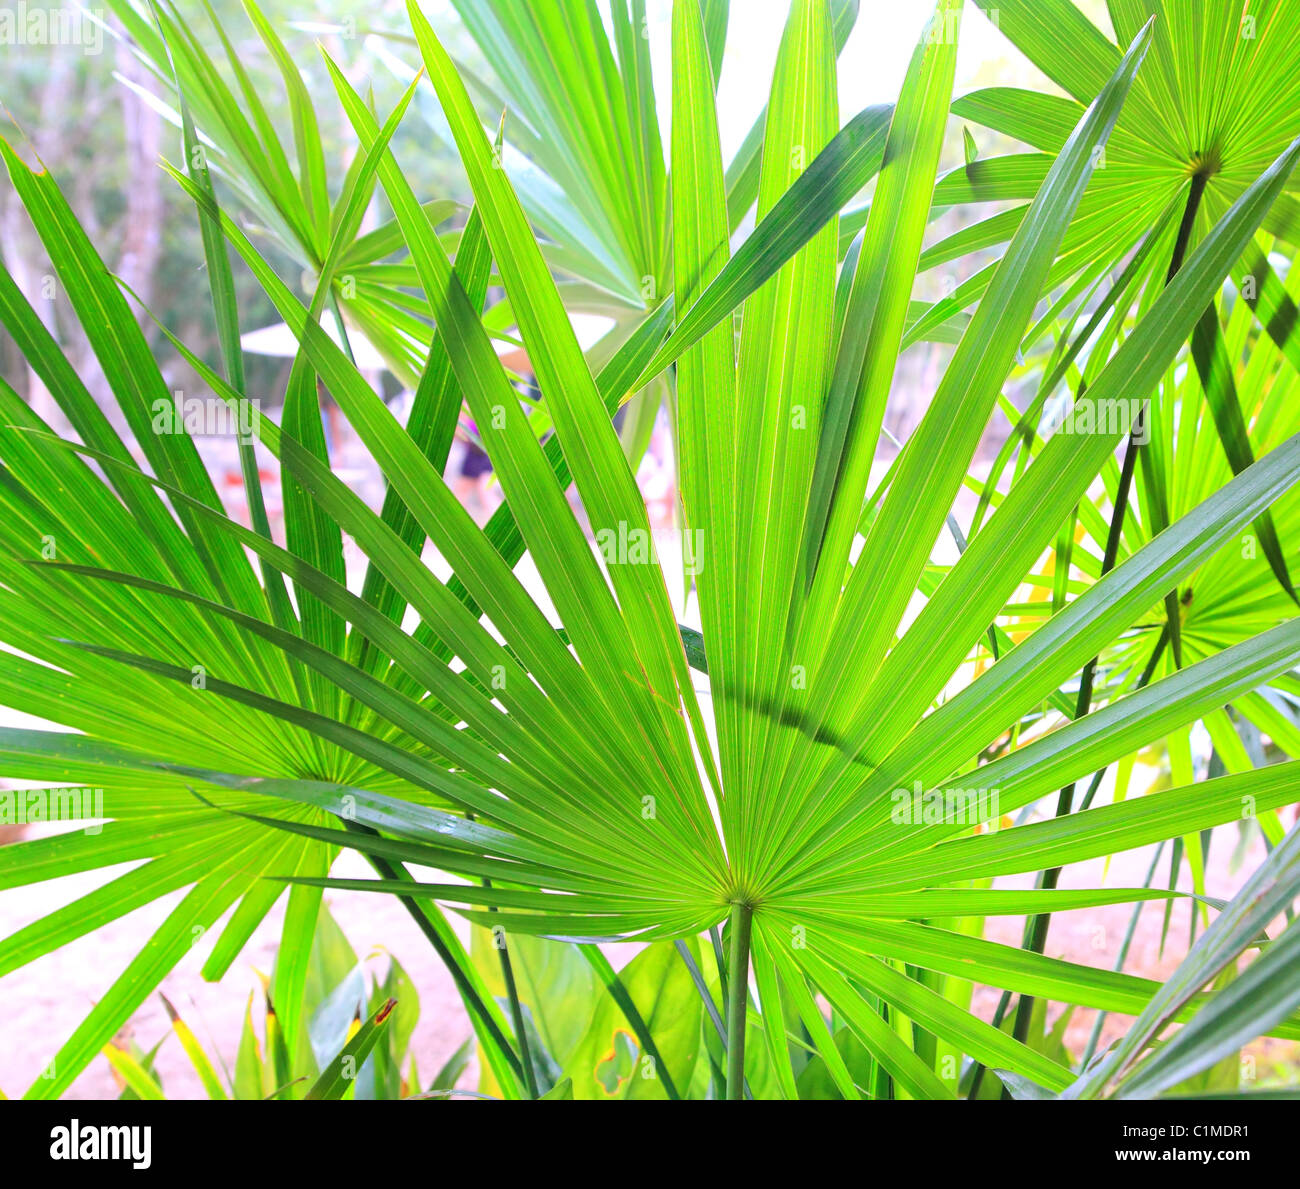 chit palm tree leaves in yucatan rainforest mexico central america